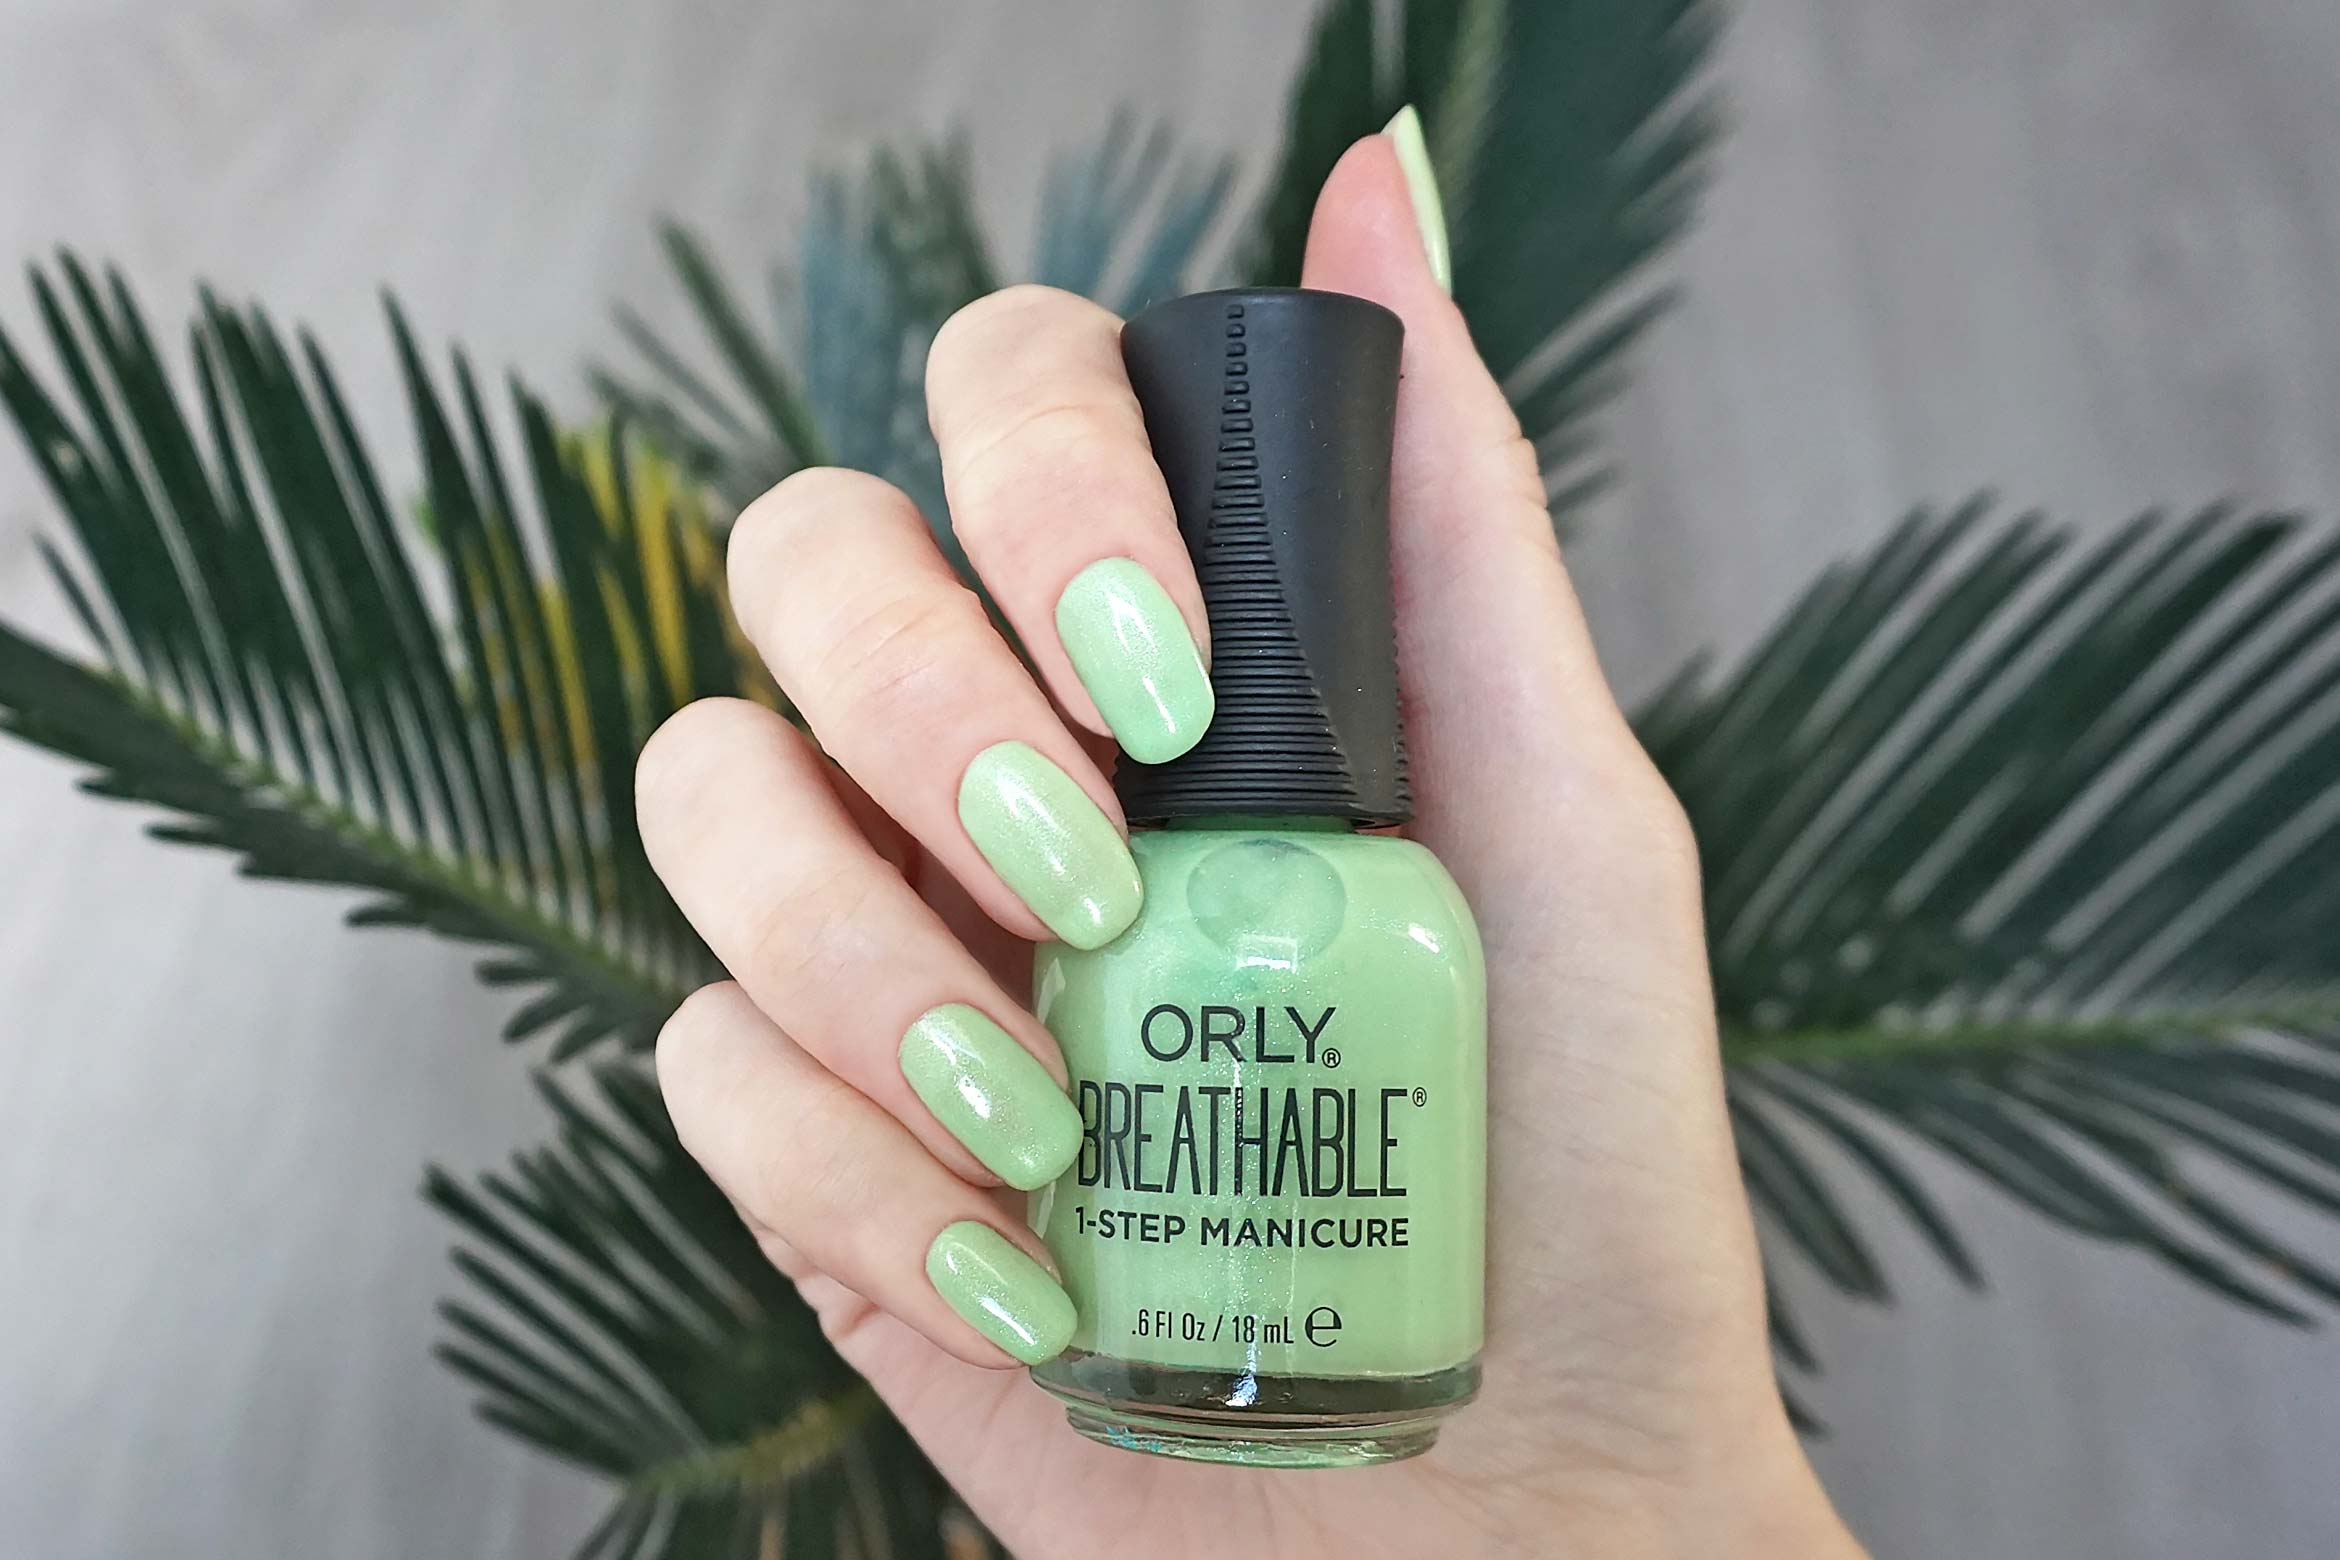 nagellak orly breathable here flora good time swatch